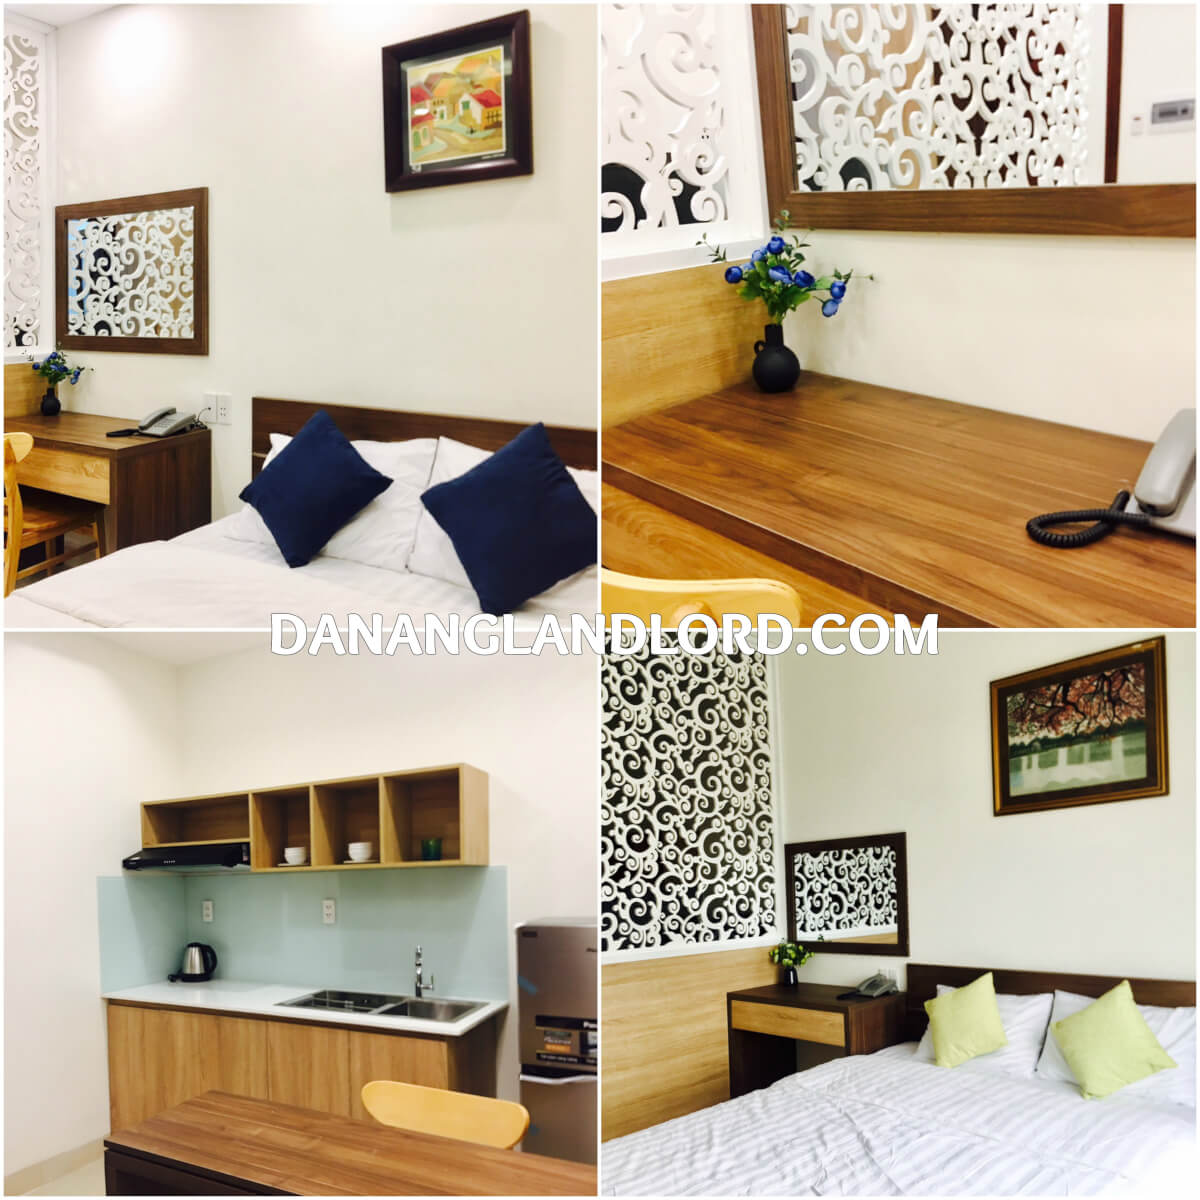 Rent A Studio Apartment: Studio 1 Bedroom Apartment For Rent, Pham Van Dong Beach